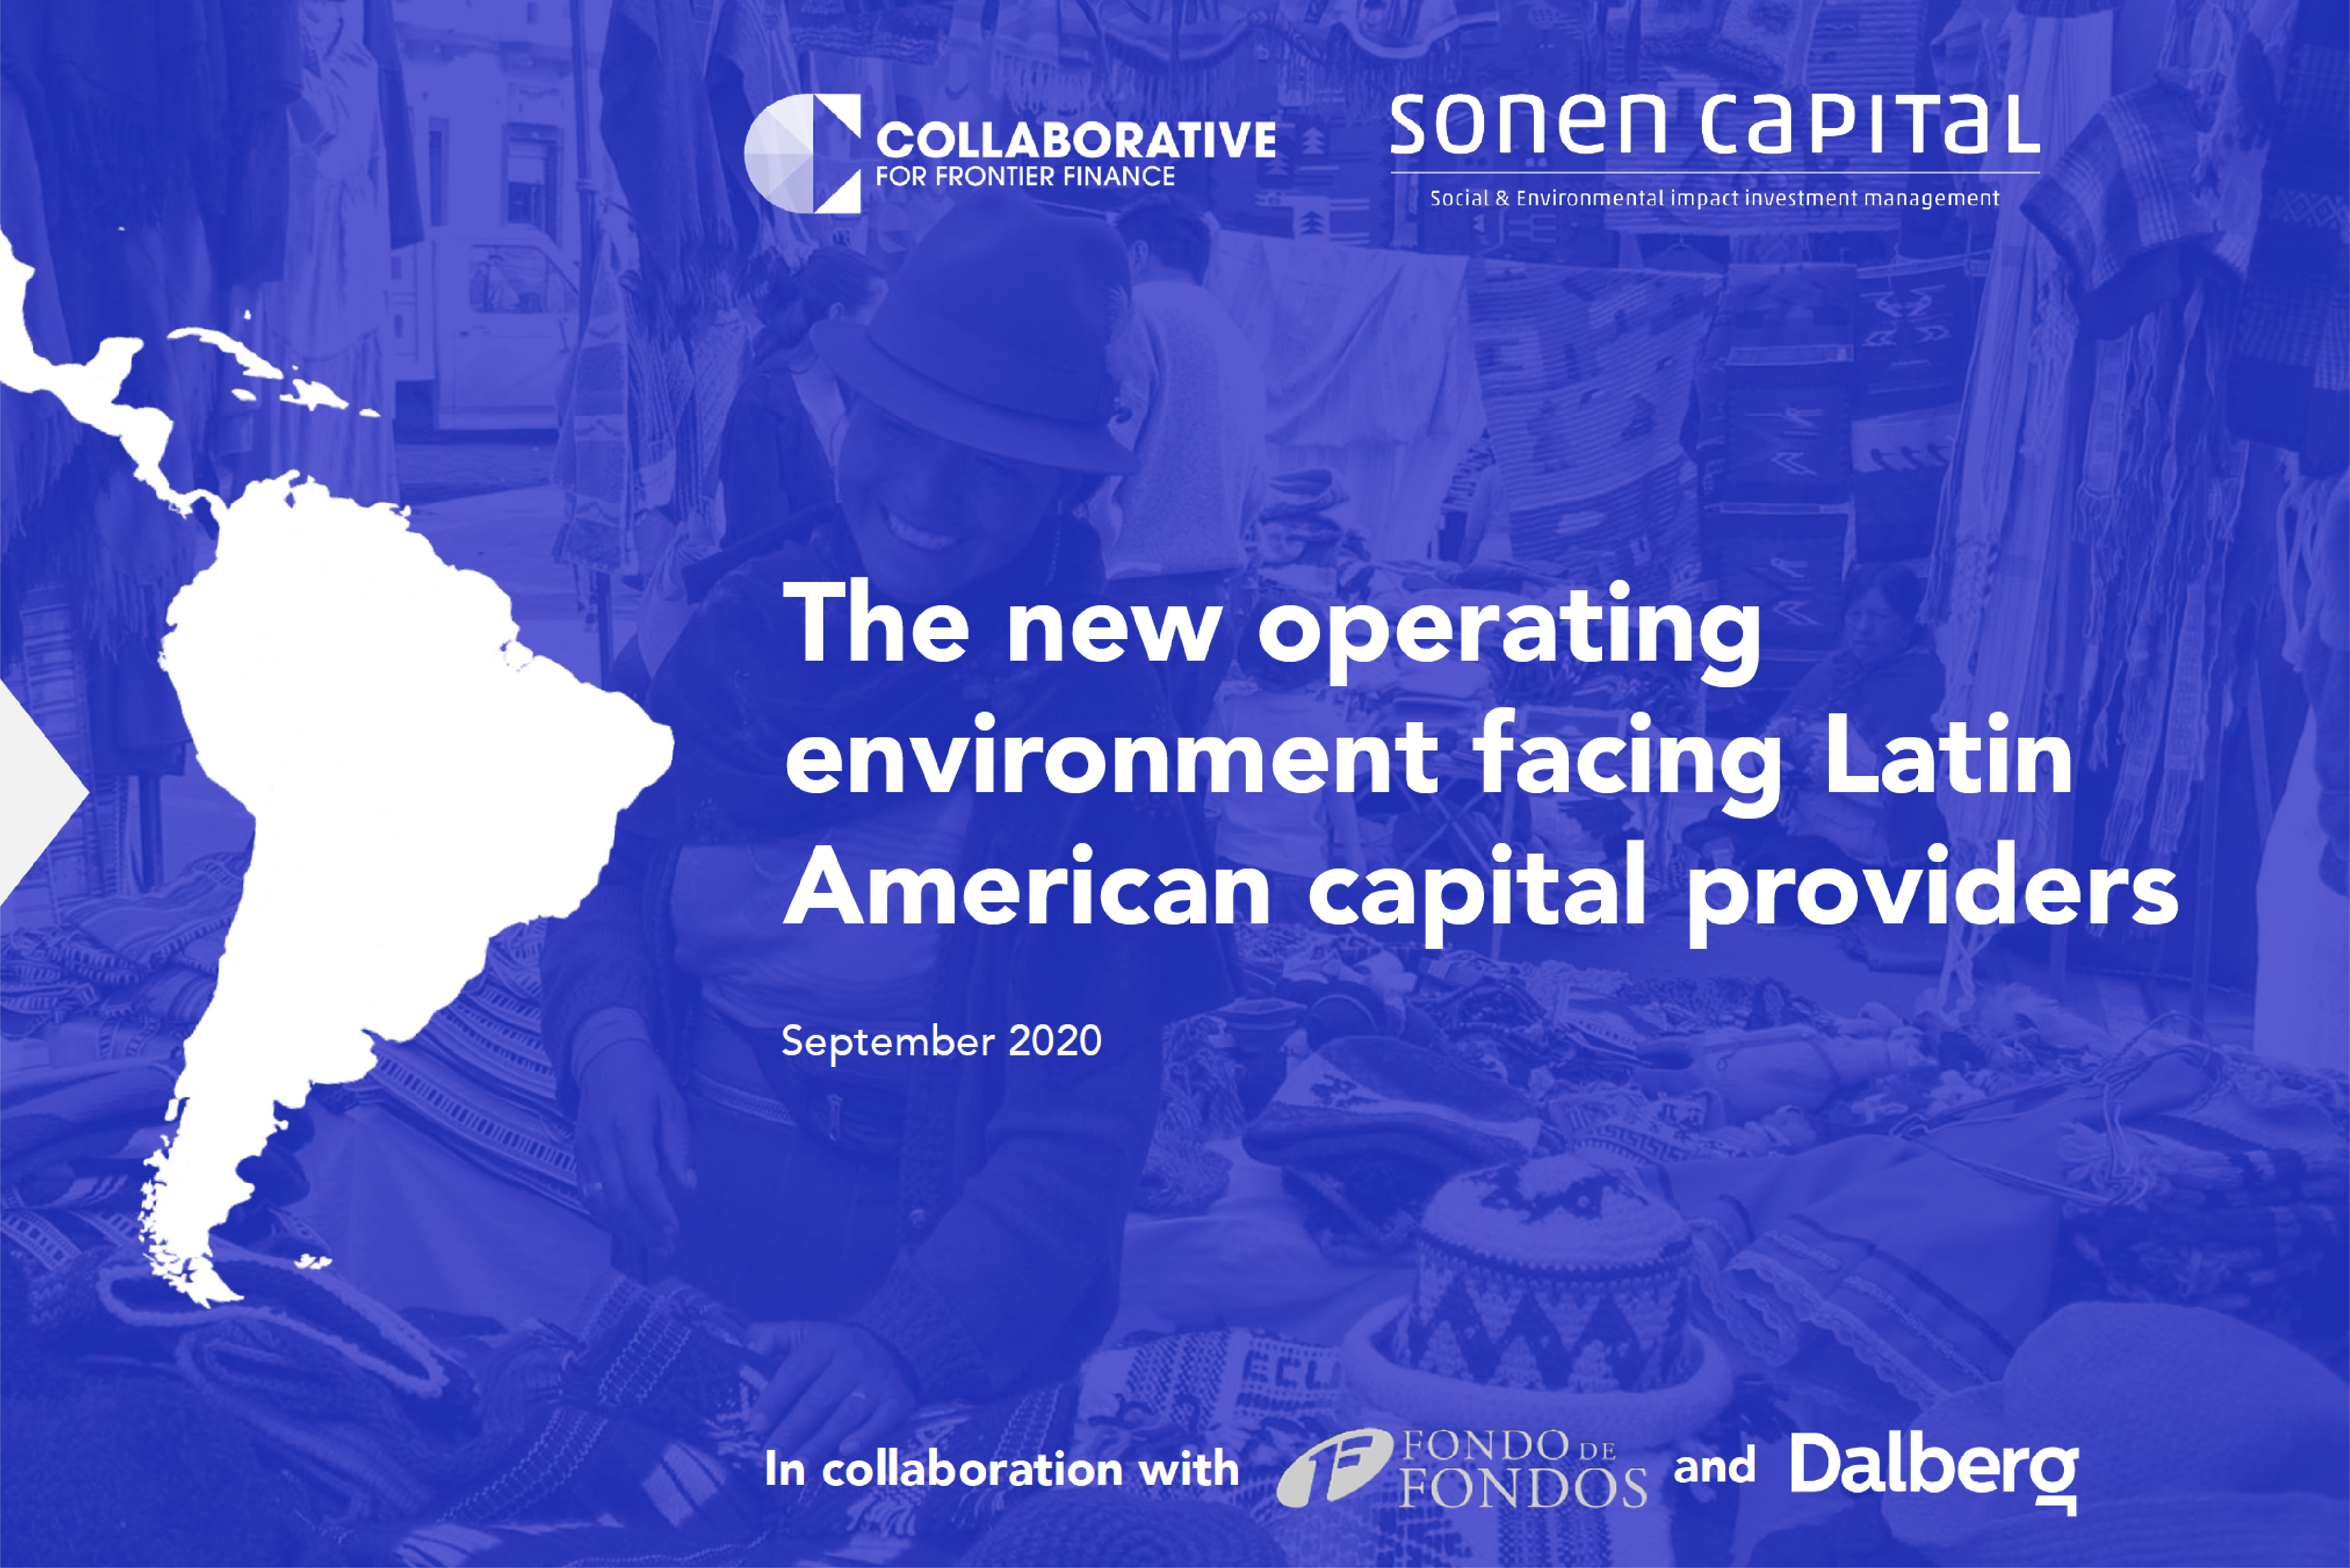 The new operating environment facing Latin American capital providers  September 2020